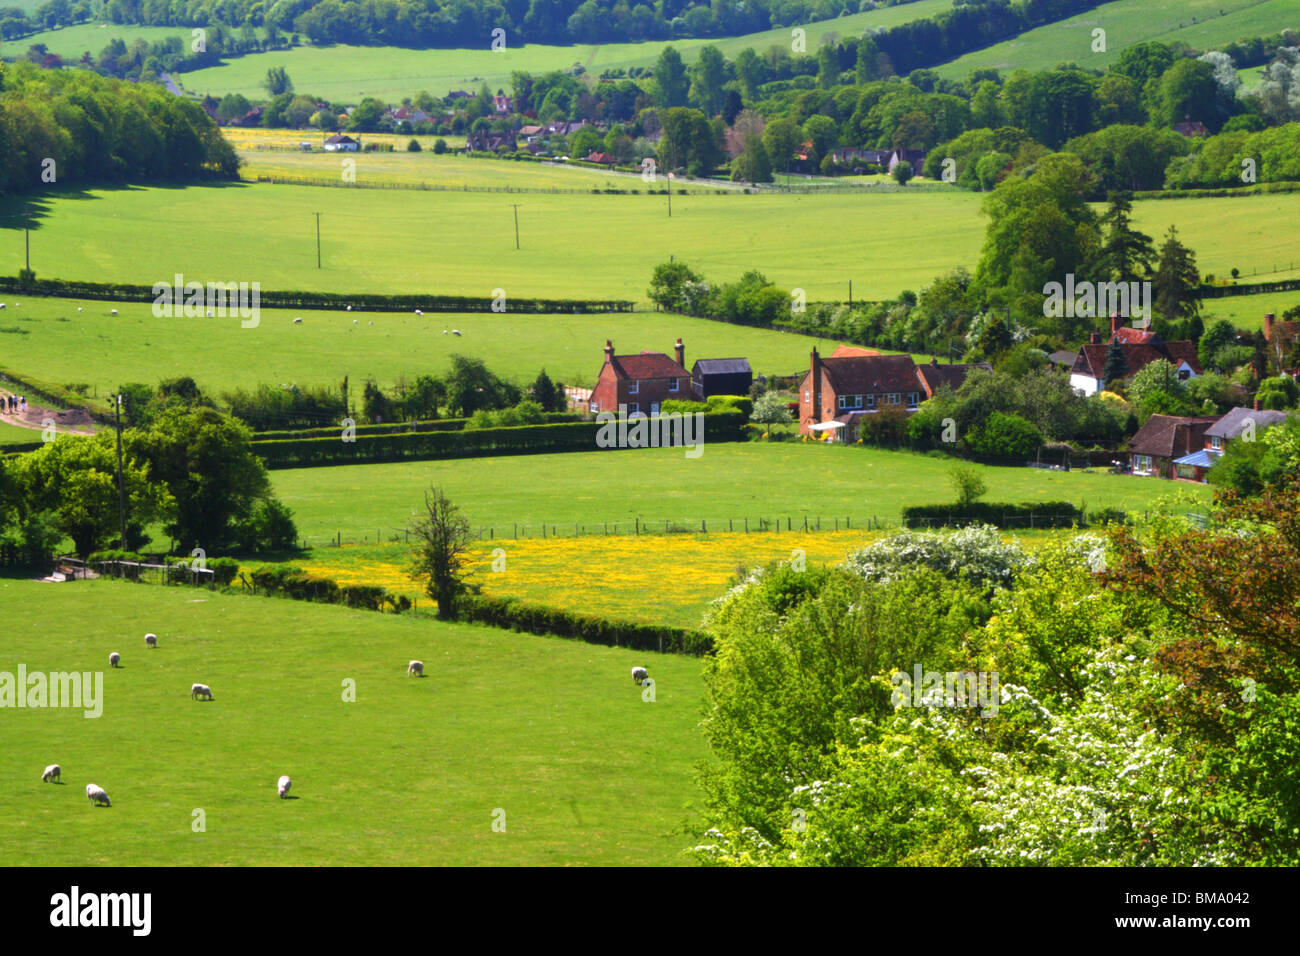 A scenic view on a sunny spring day, from the edge of Hanger Wood with Fingest nestled in the Hambleden Valley. - Stock Image